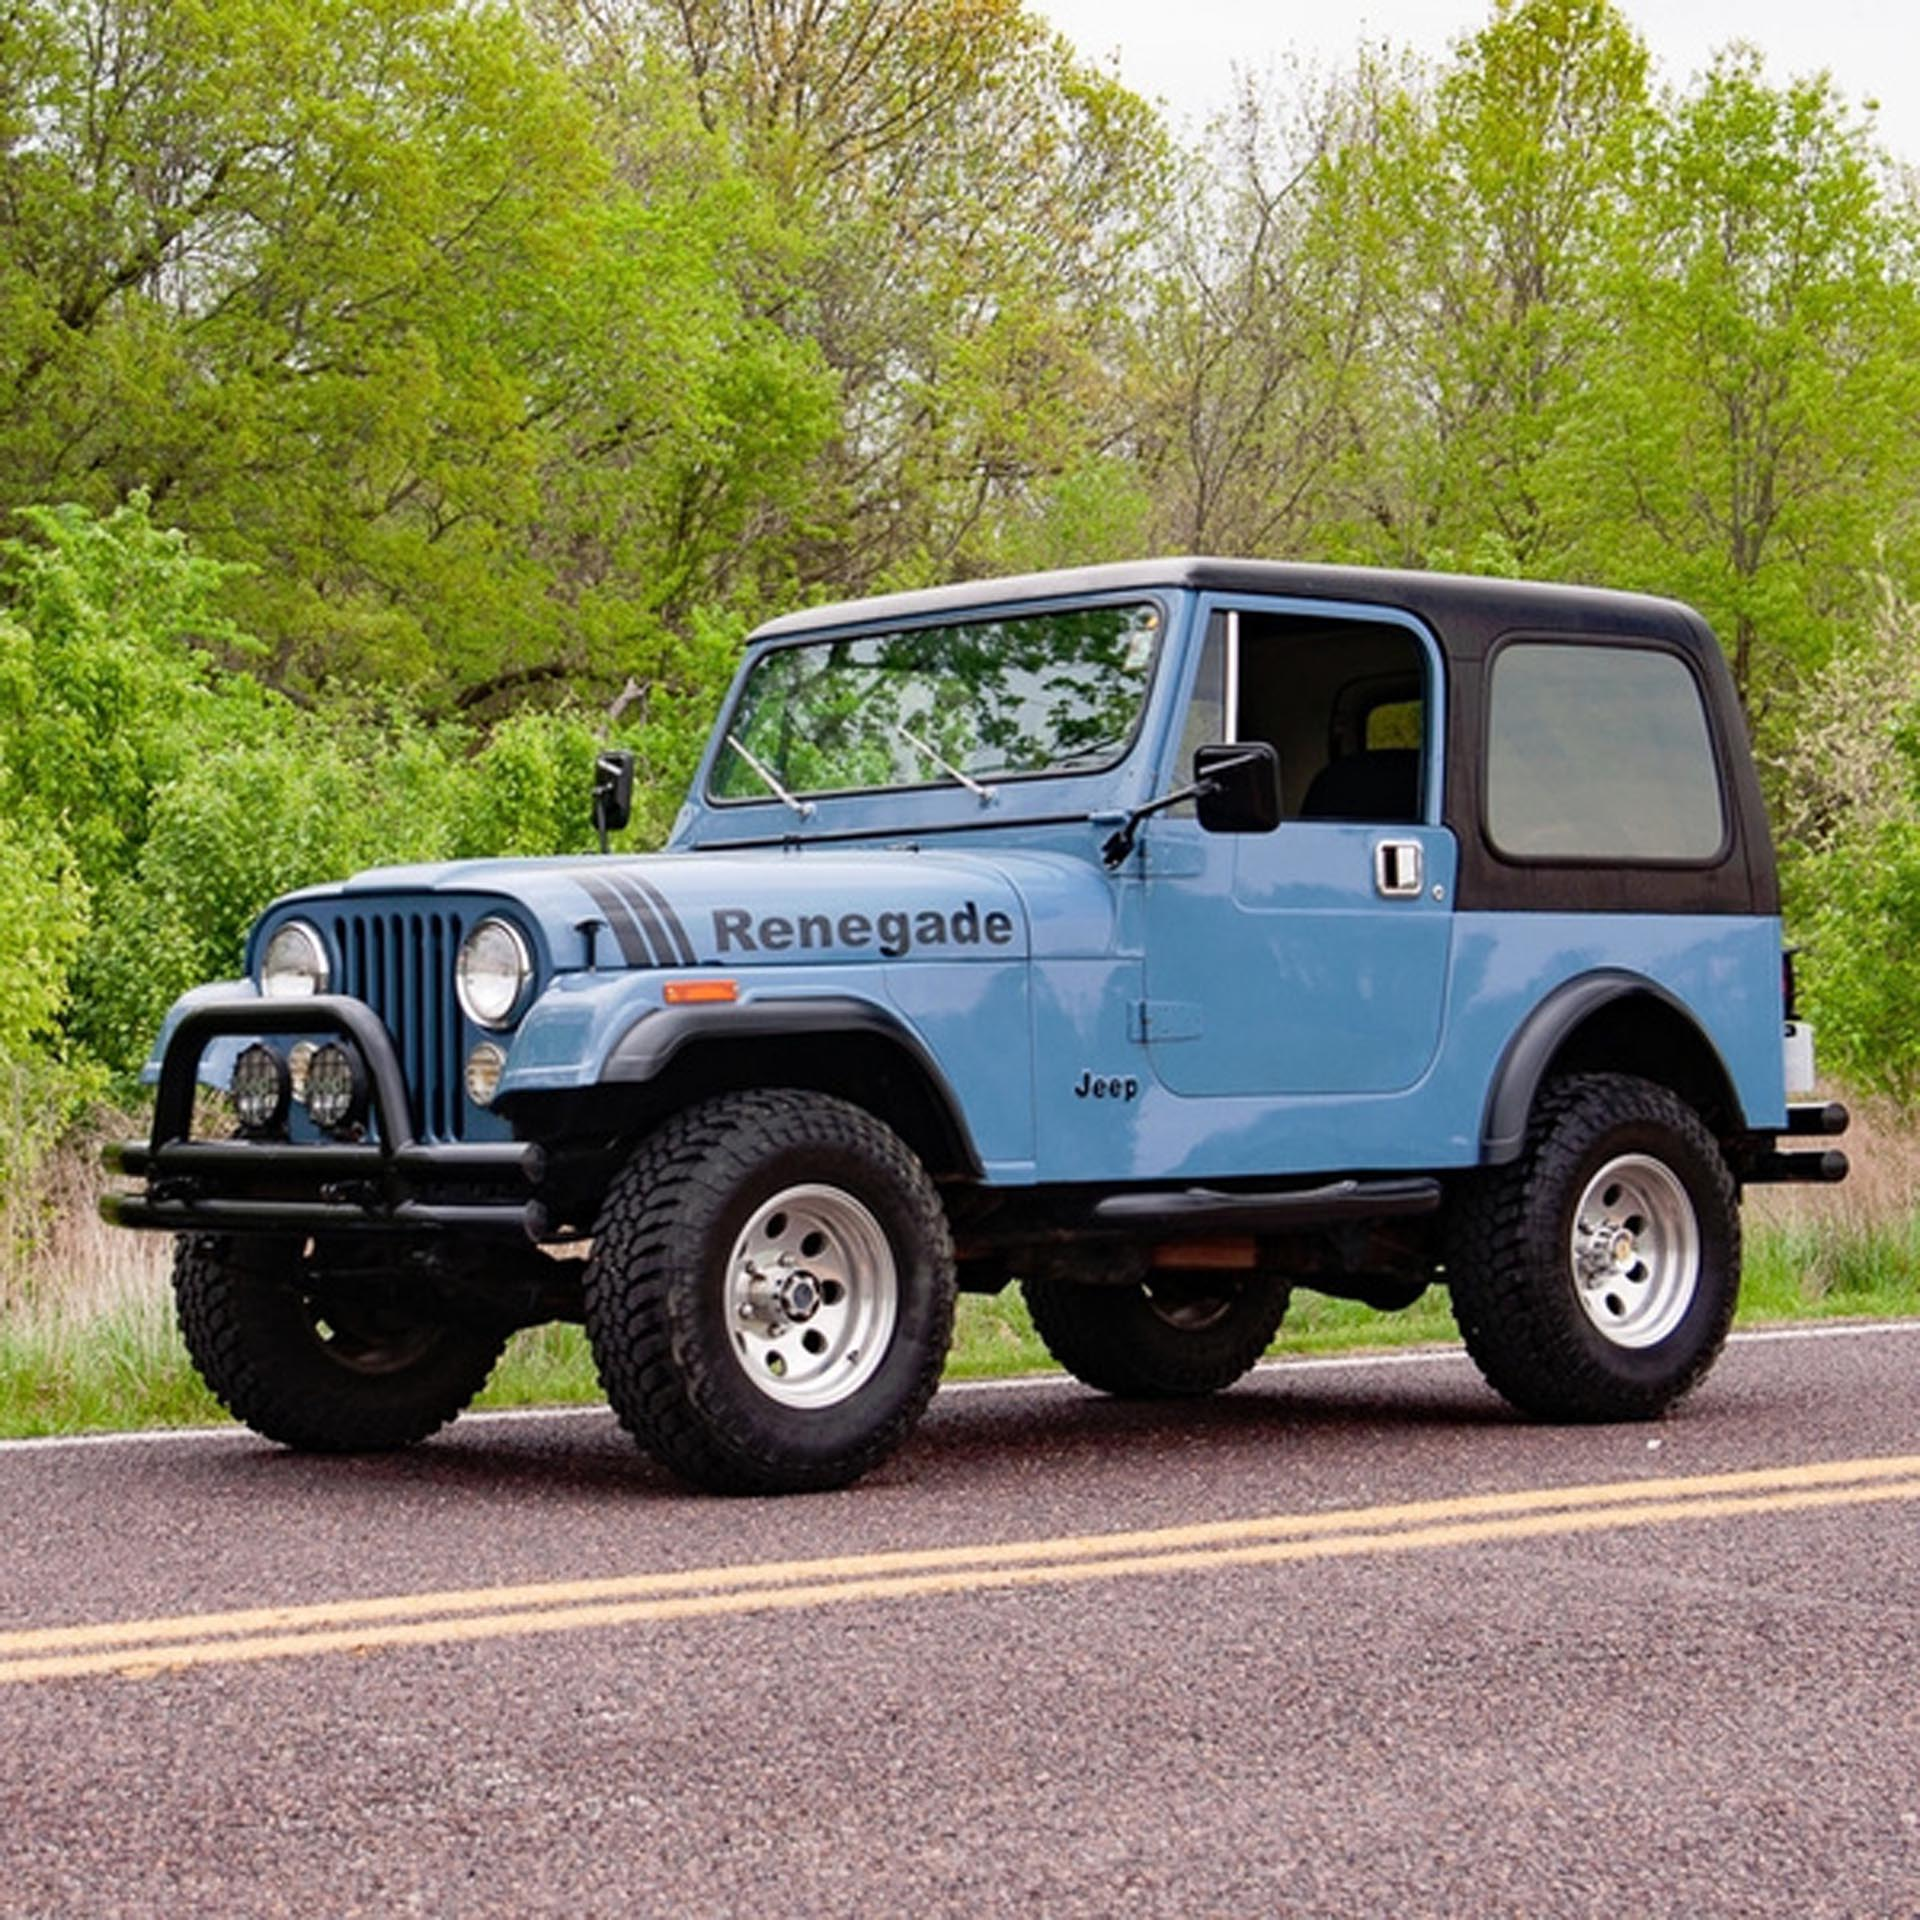 1981 Jeep CJ-7 Renegade SUV